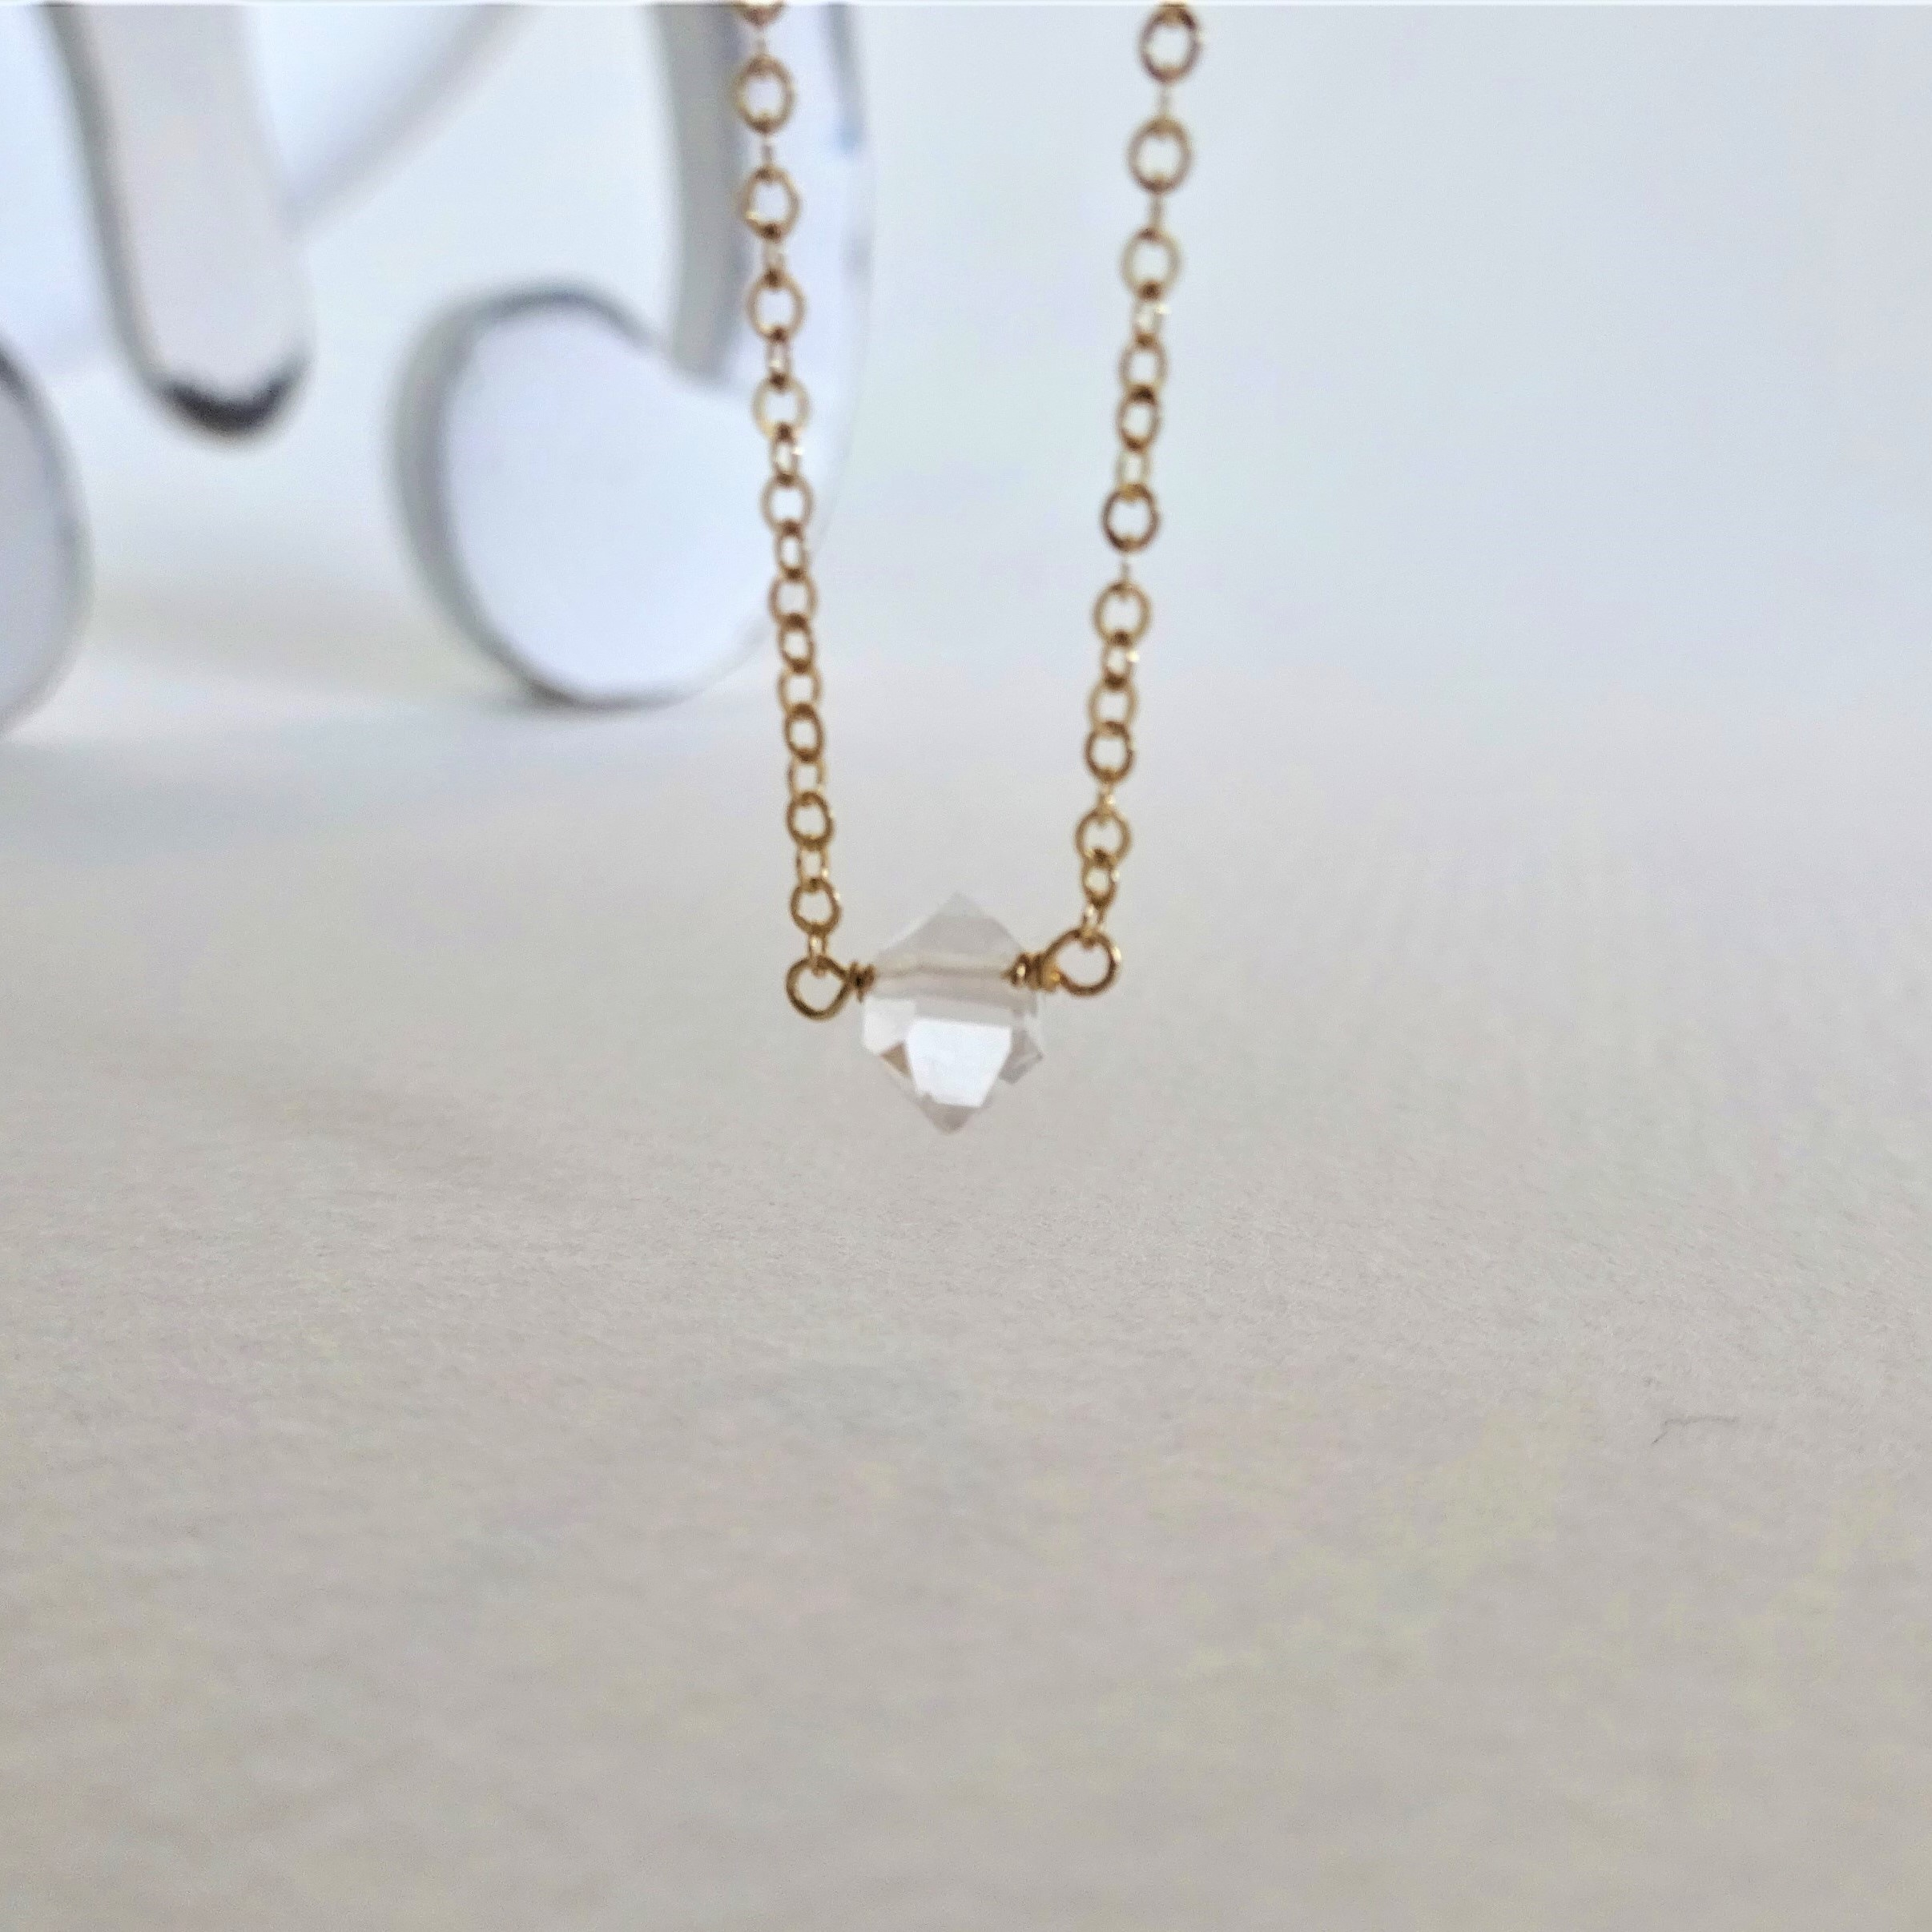 送料無料 14kgf*AAA Herkimerdiamond one stone necklace